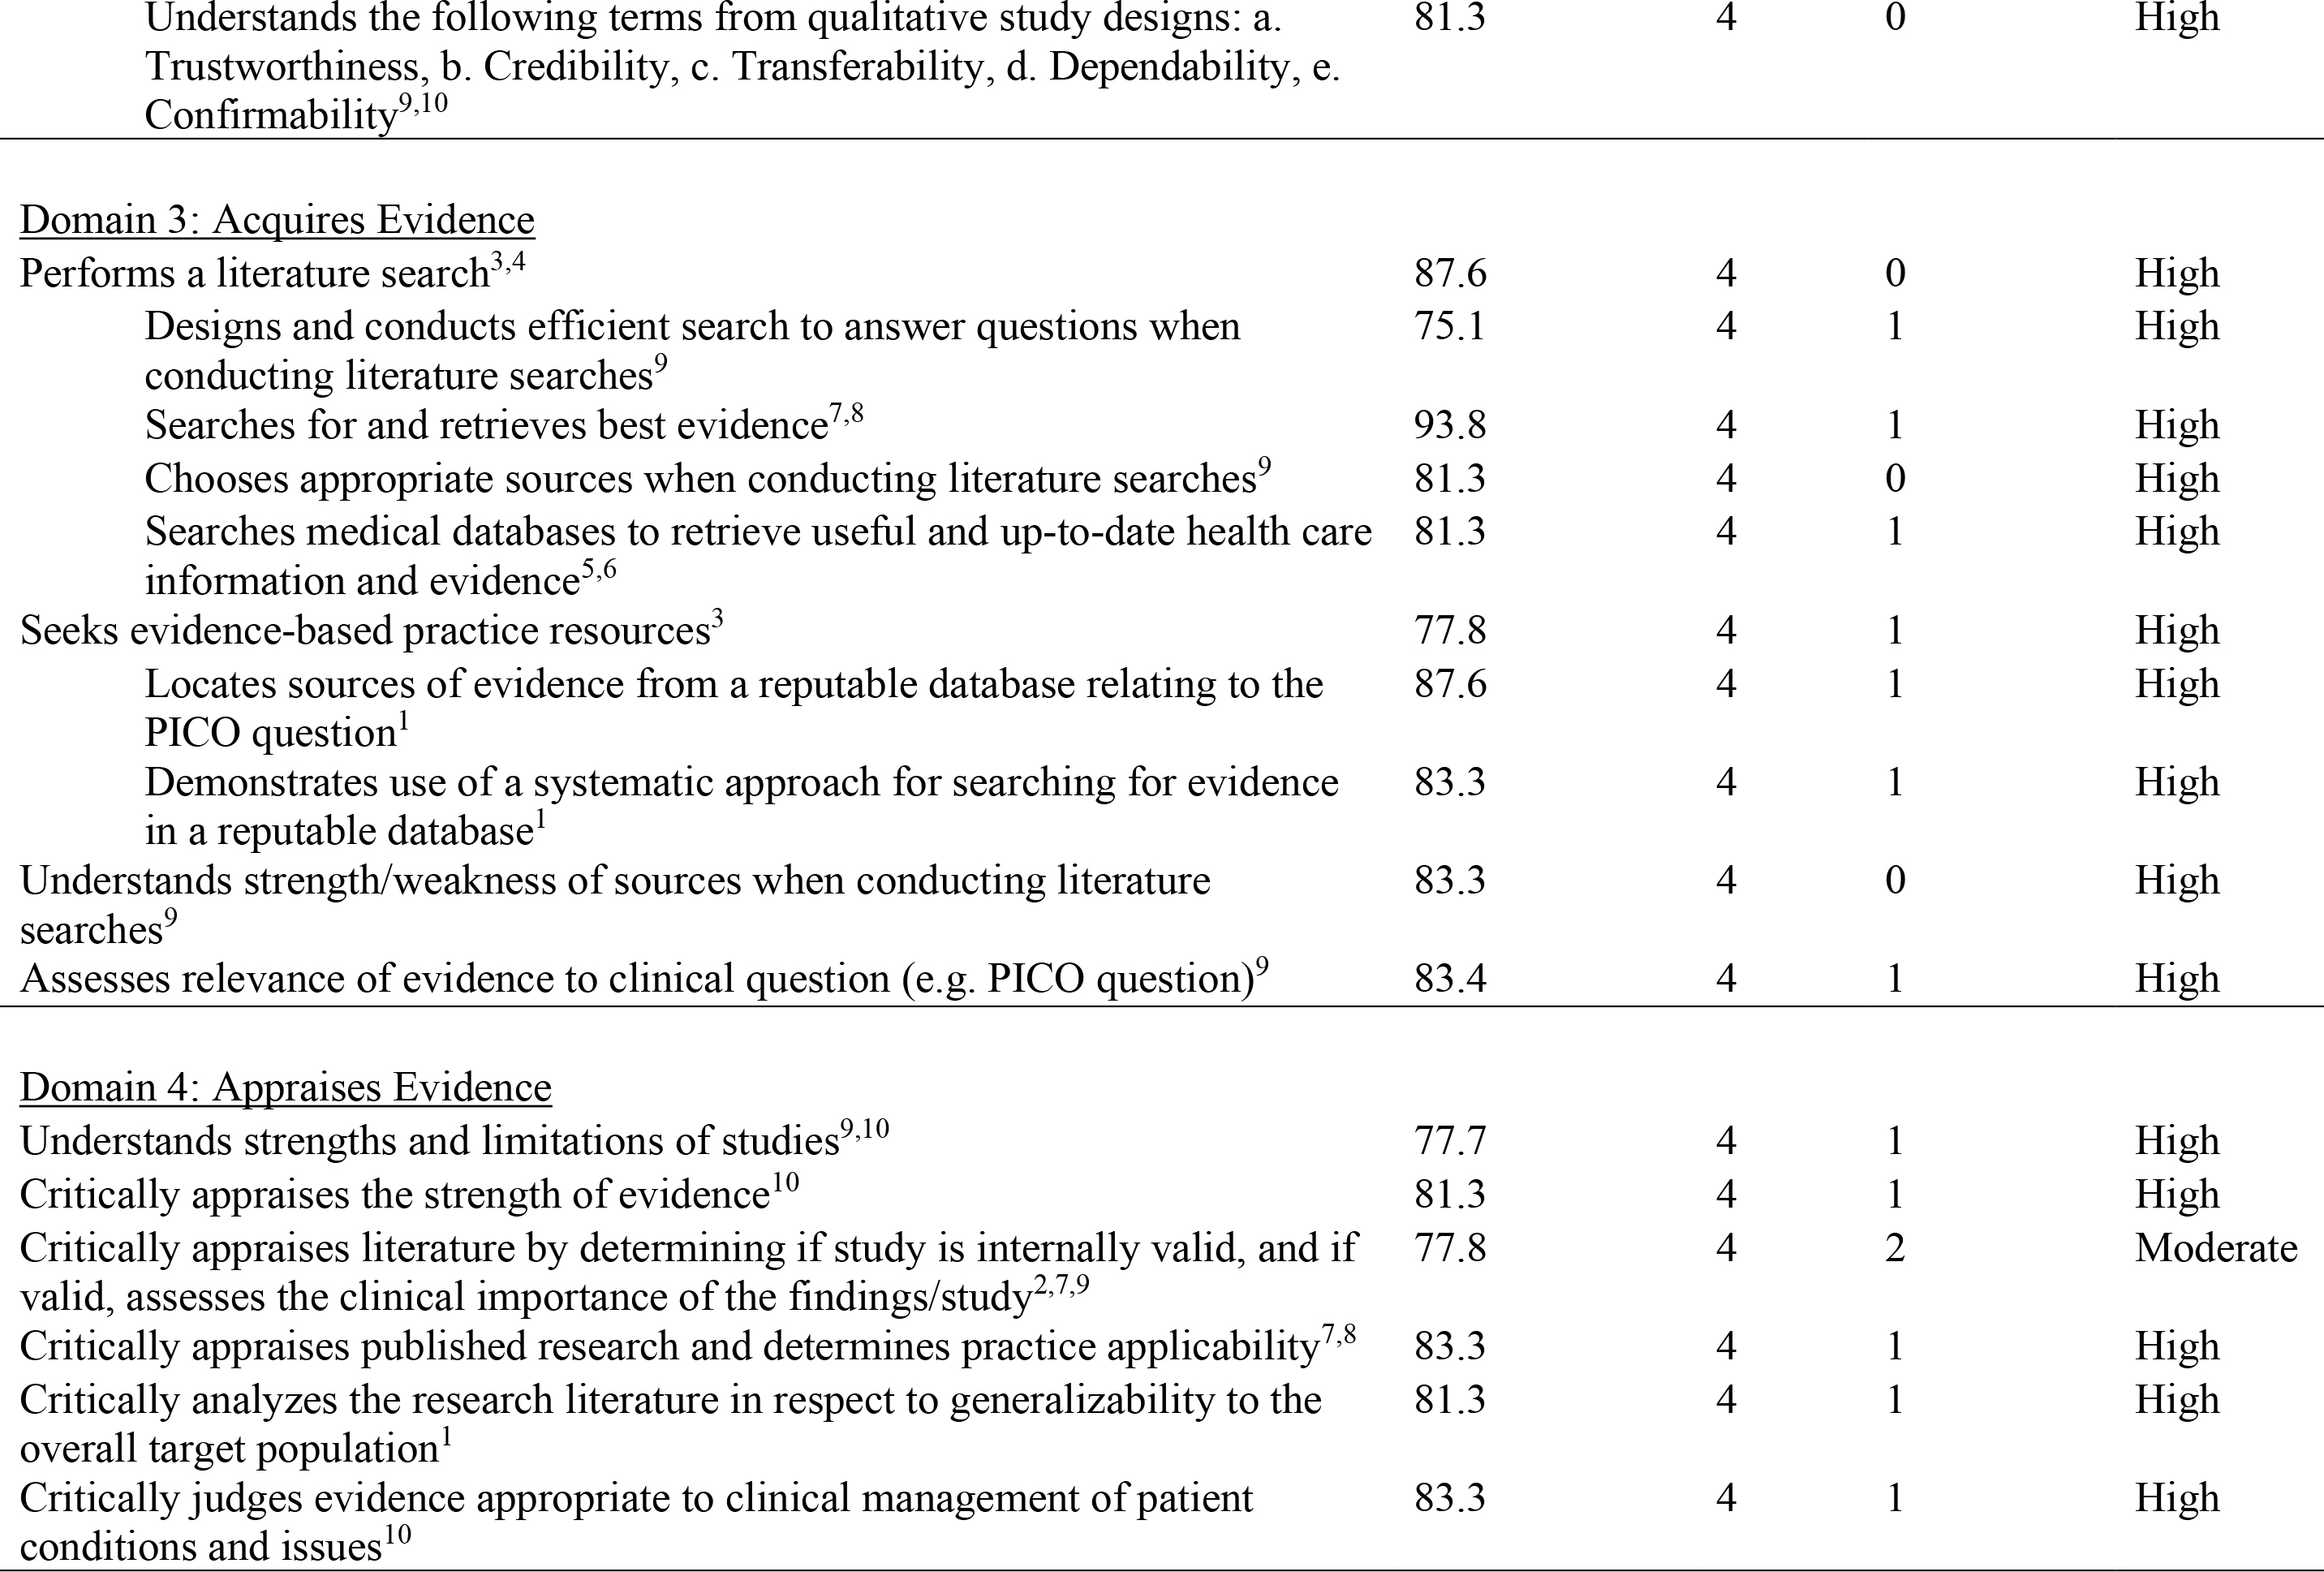 Evidence-based Practice Competency Domains, Competencies, and Consensus Ratings